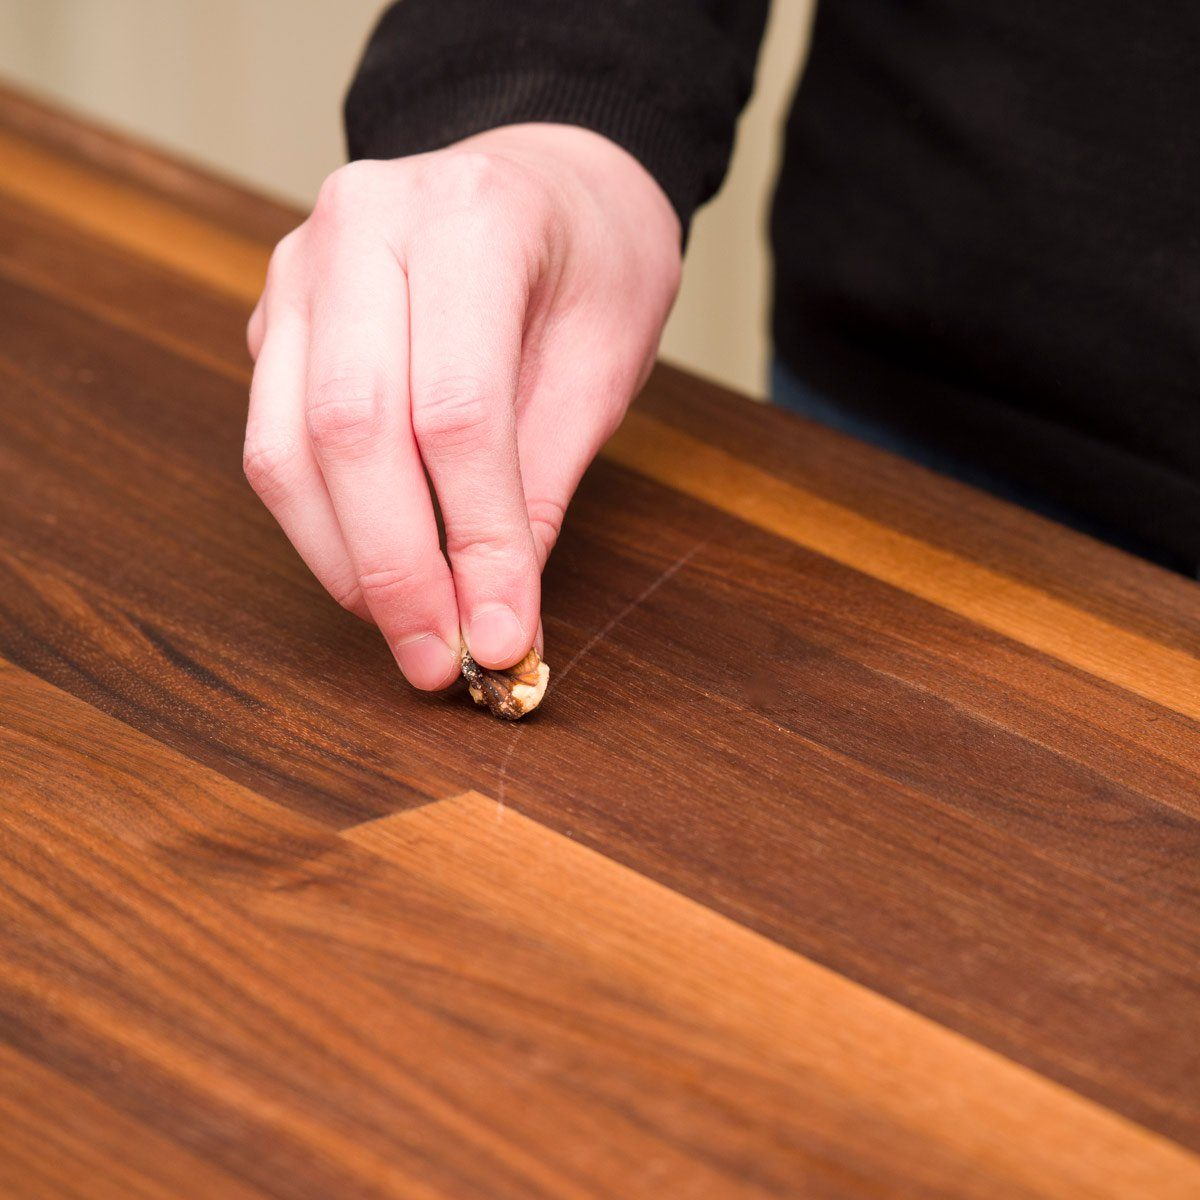 Spring cleaning tips - Walnut fixes scratched wood